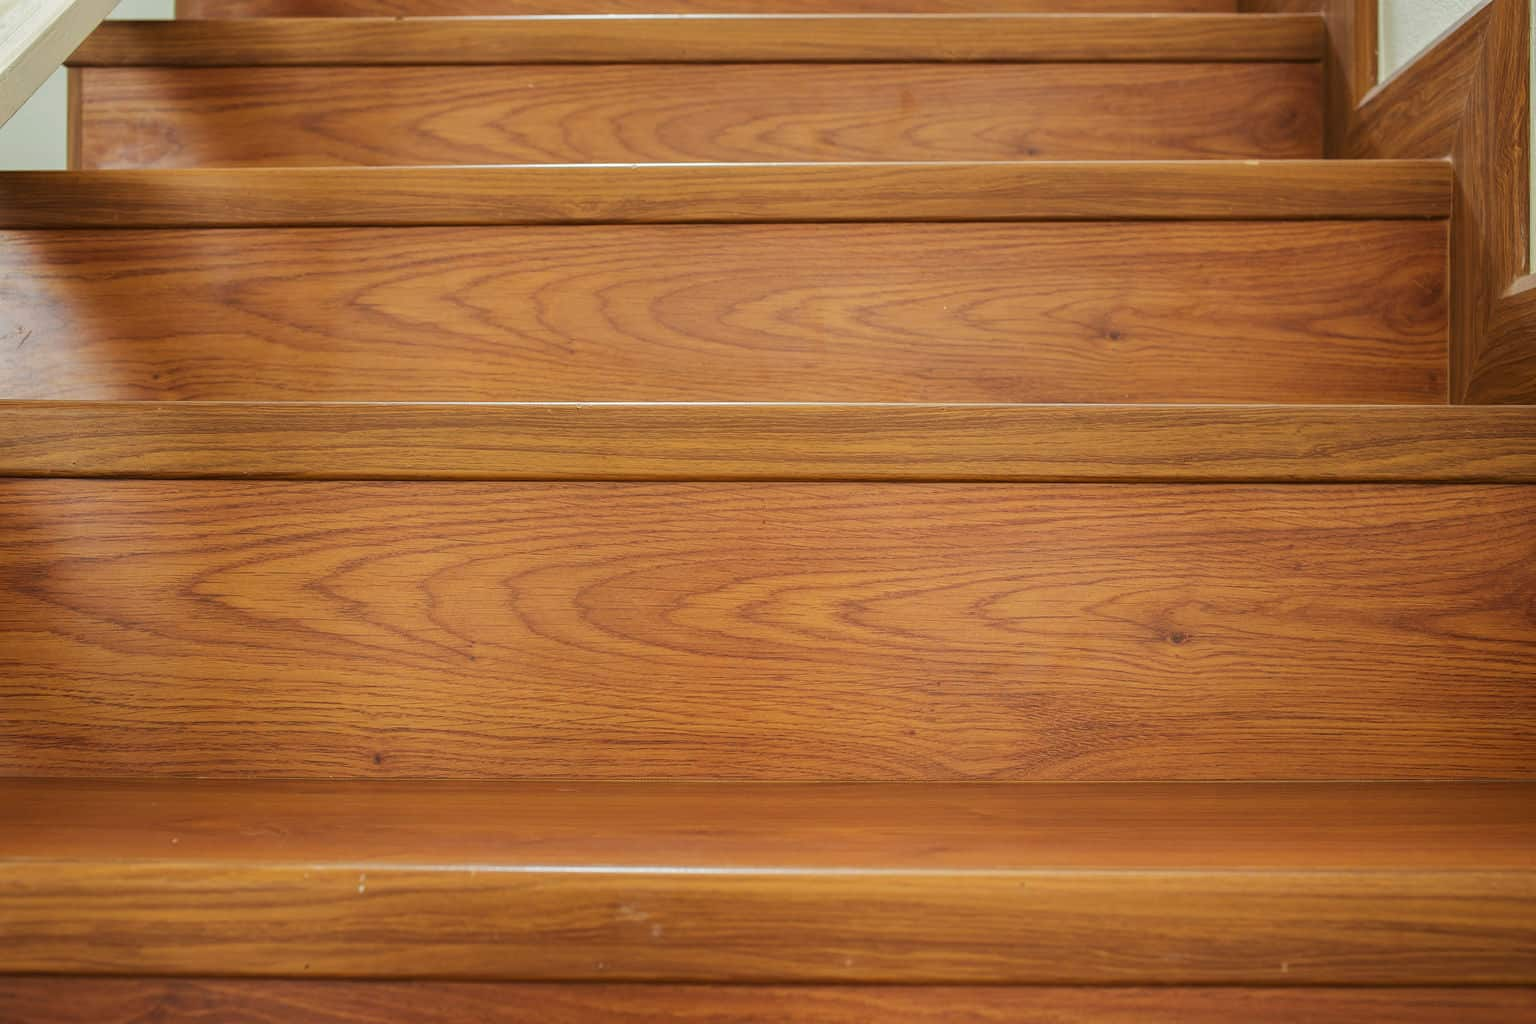 Laminate Flooring Stairs Can Be Pretty Durable